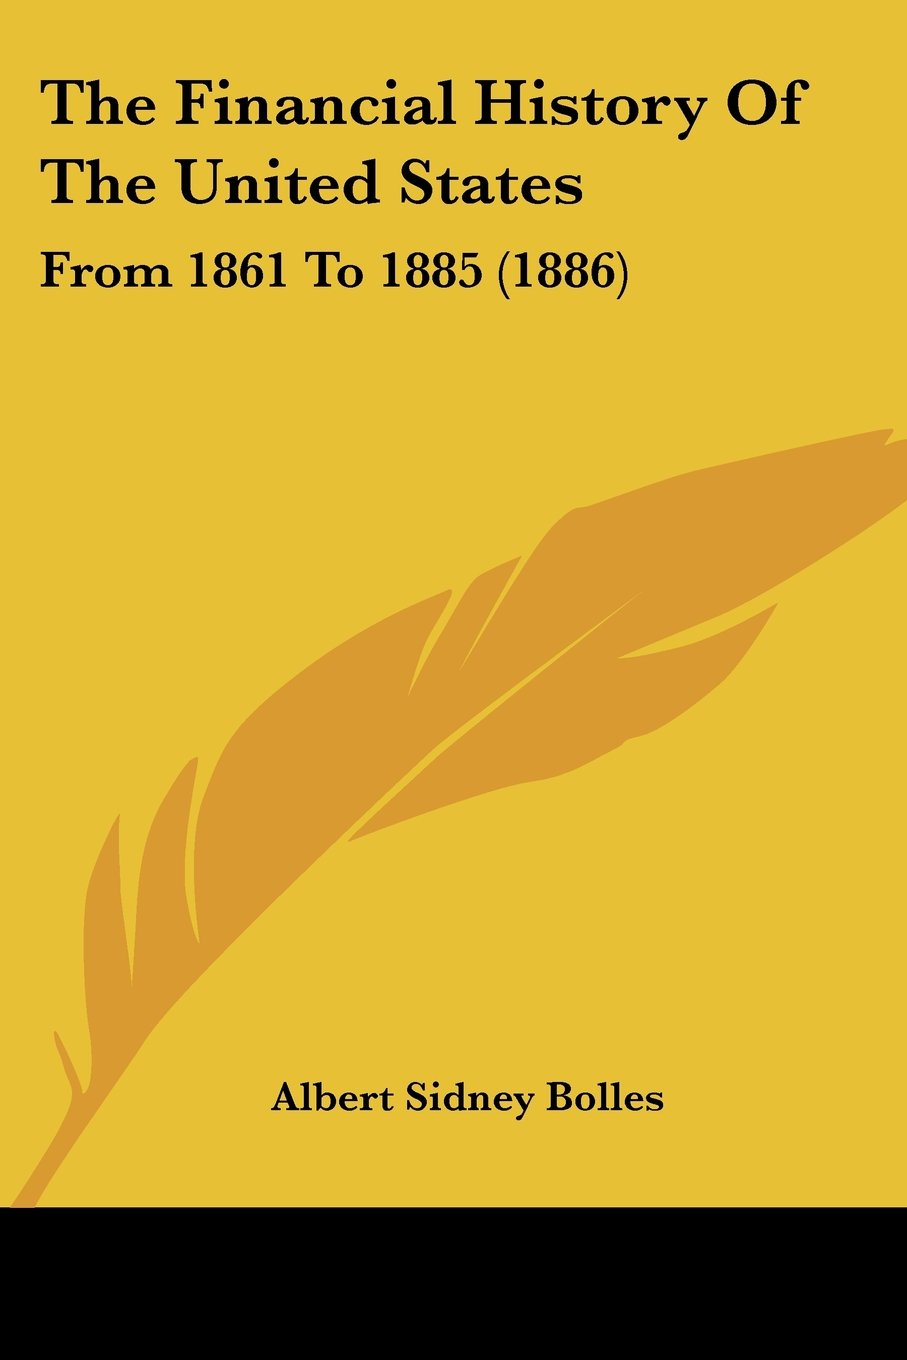 Download The Financial History Of The United States: From 1861 To 1885 (1886) pdf